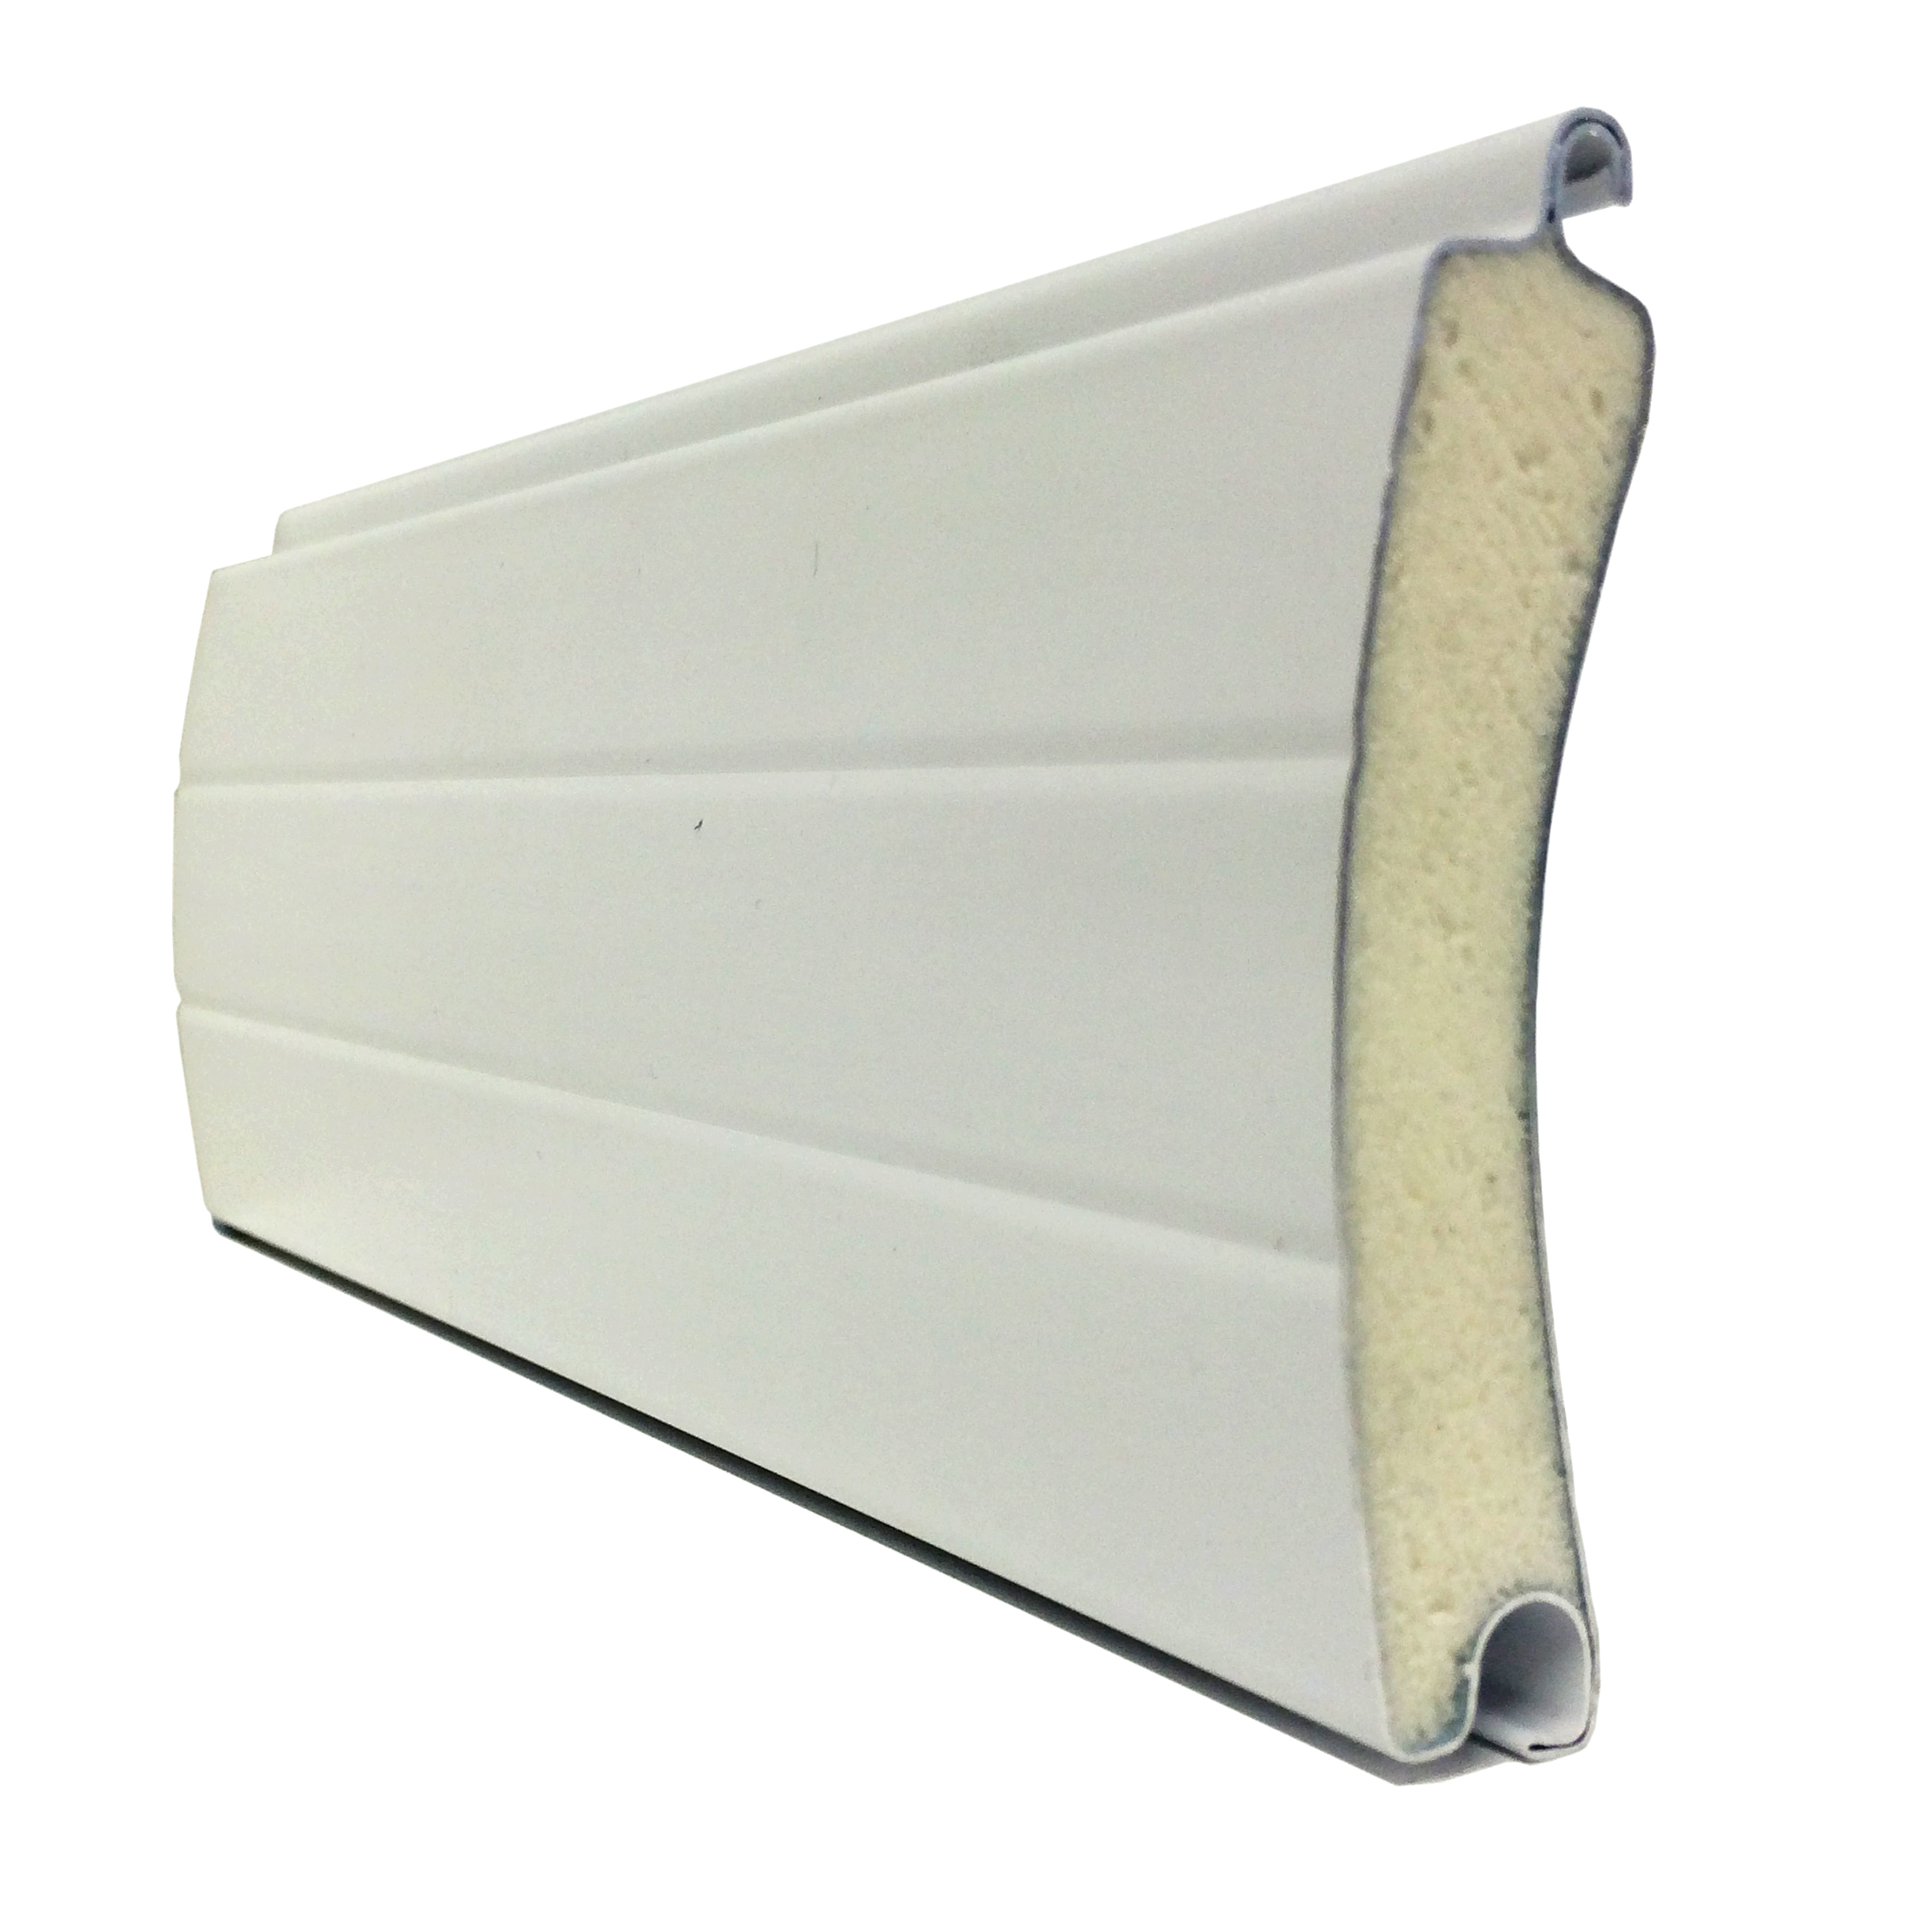 Steelroll I77 Security Shutter Rollershield